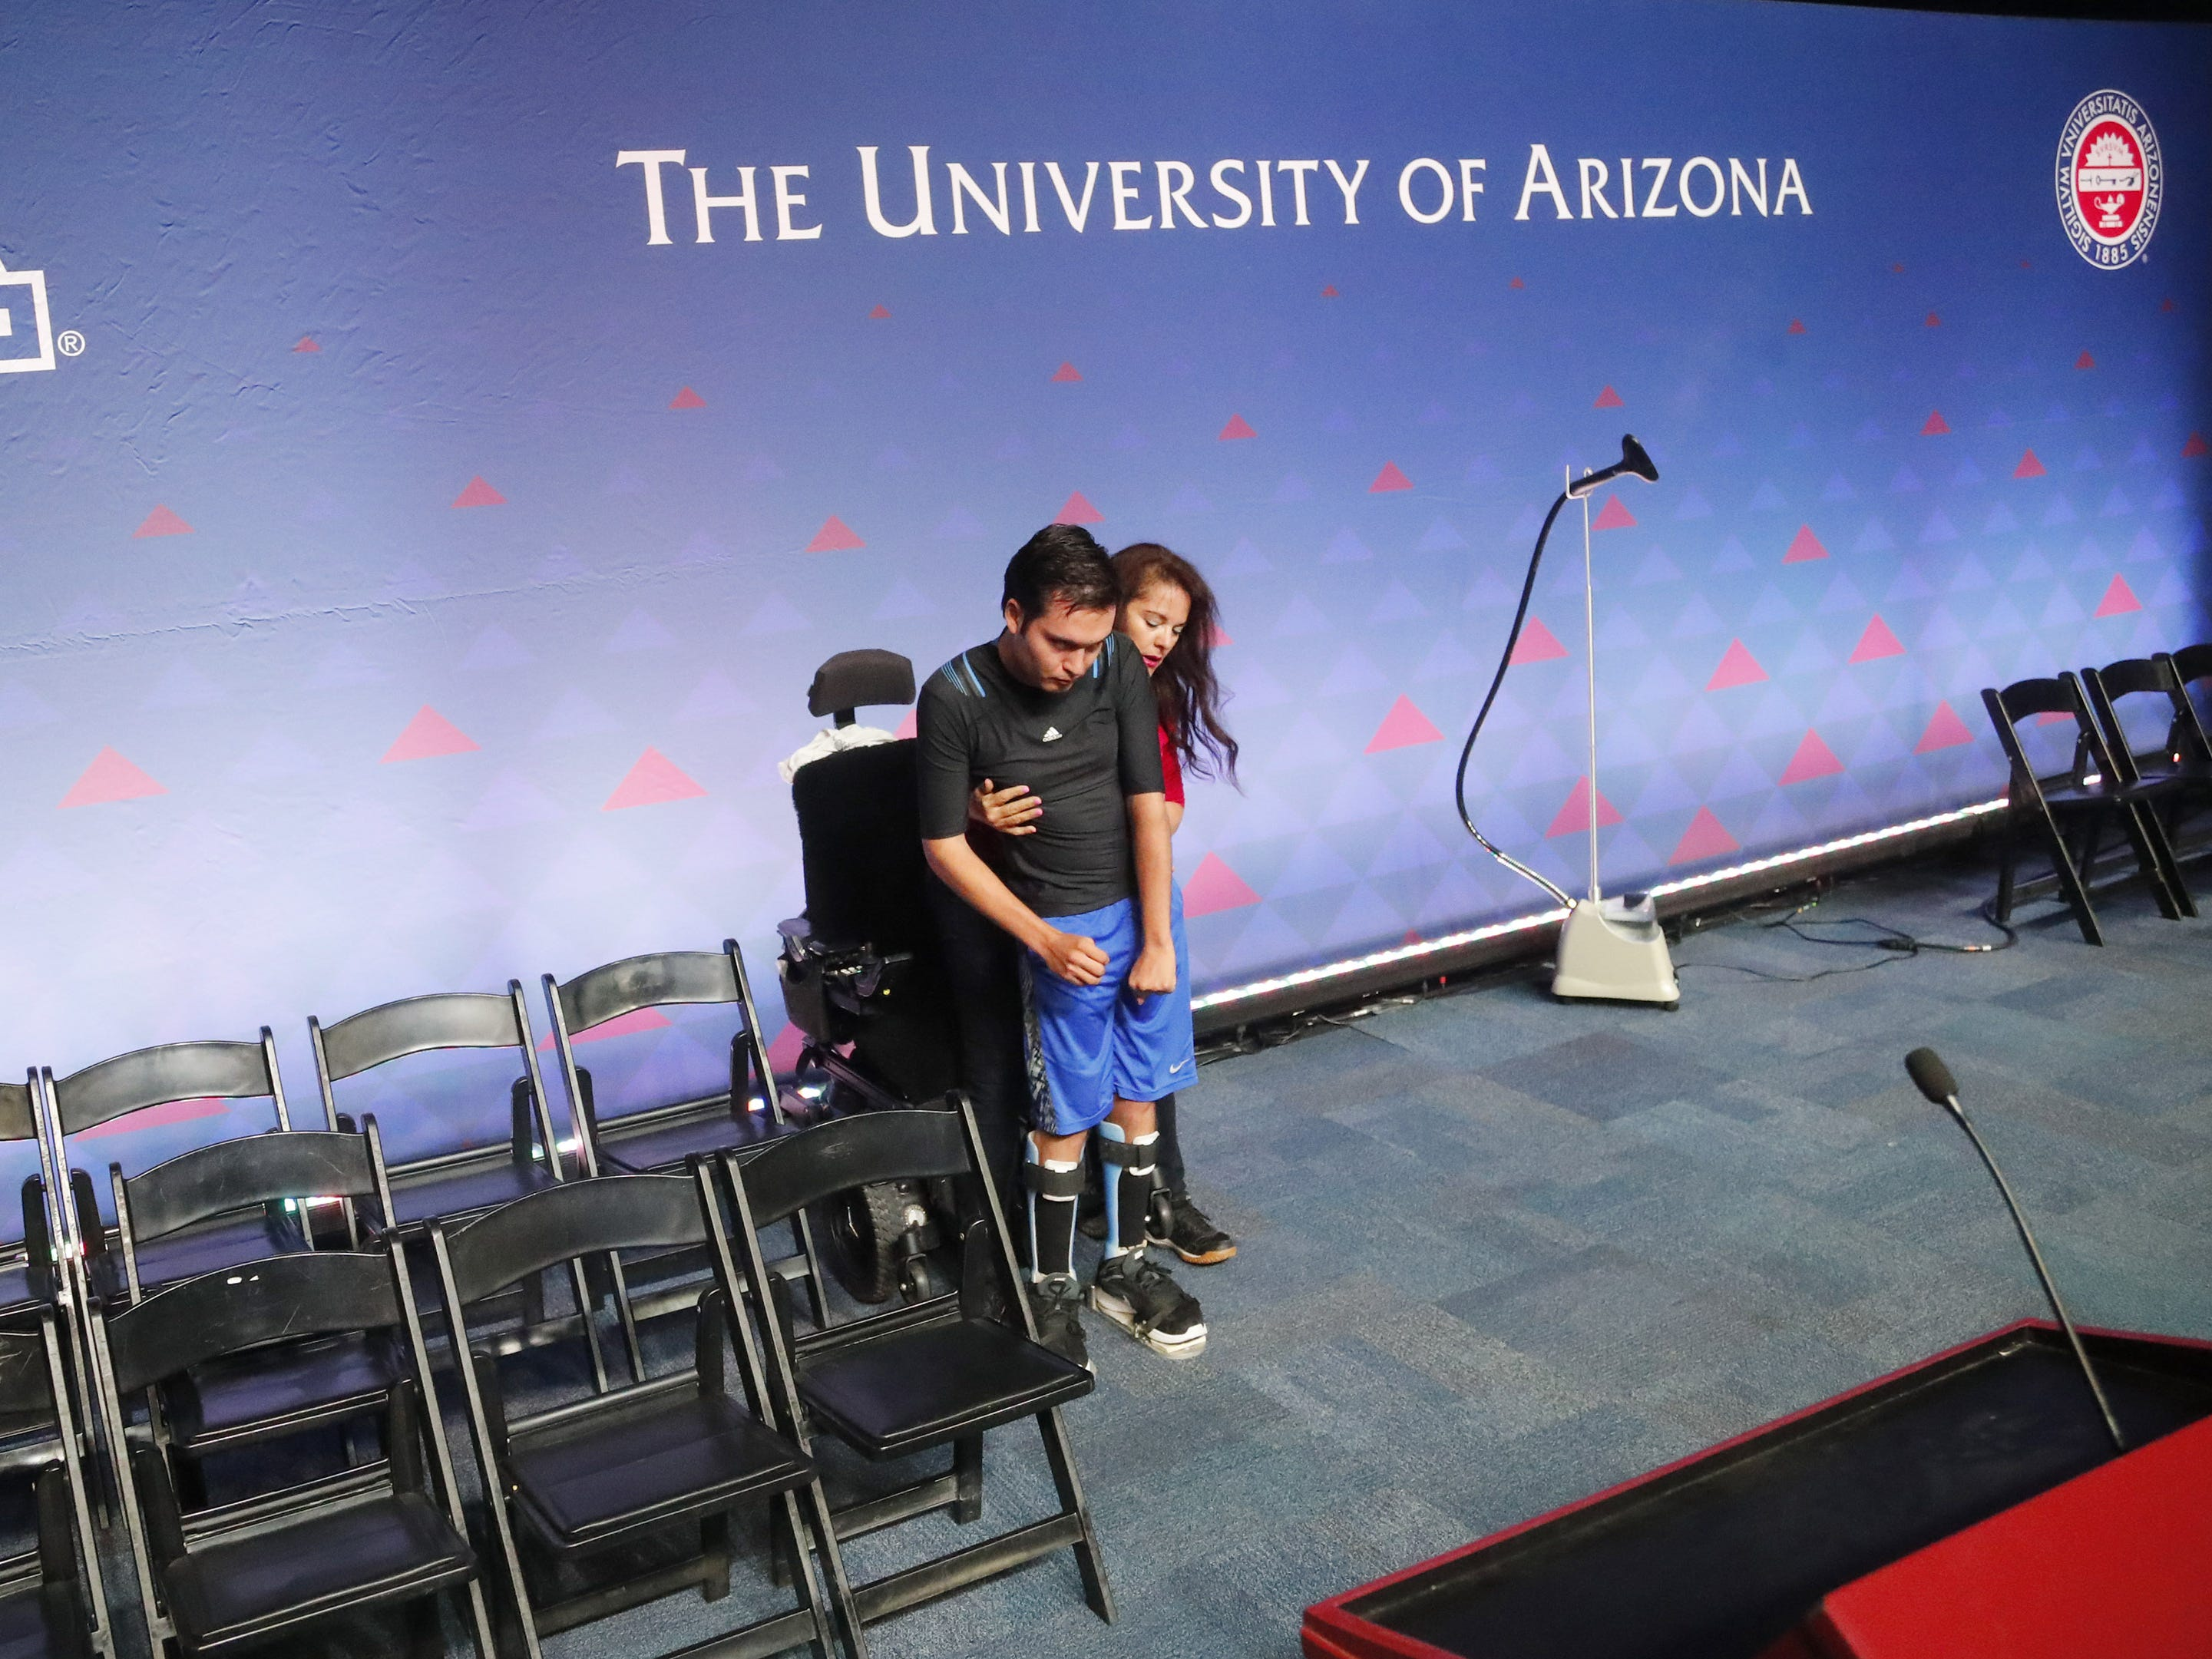 University of Arizona graduate Jeffrey Bristol practices walking on stage with his mom, Hermelinda, at McKale Center in Tucson, Ariz. on May 8, 2019. He has cerebral palsy and is a lifelong wheelchair user but has learned to walk with the help from engineering students who helped construct an exoskeleton. He plans on walking for graduation.